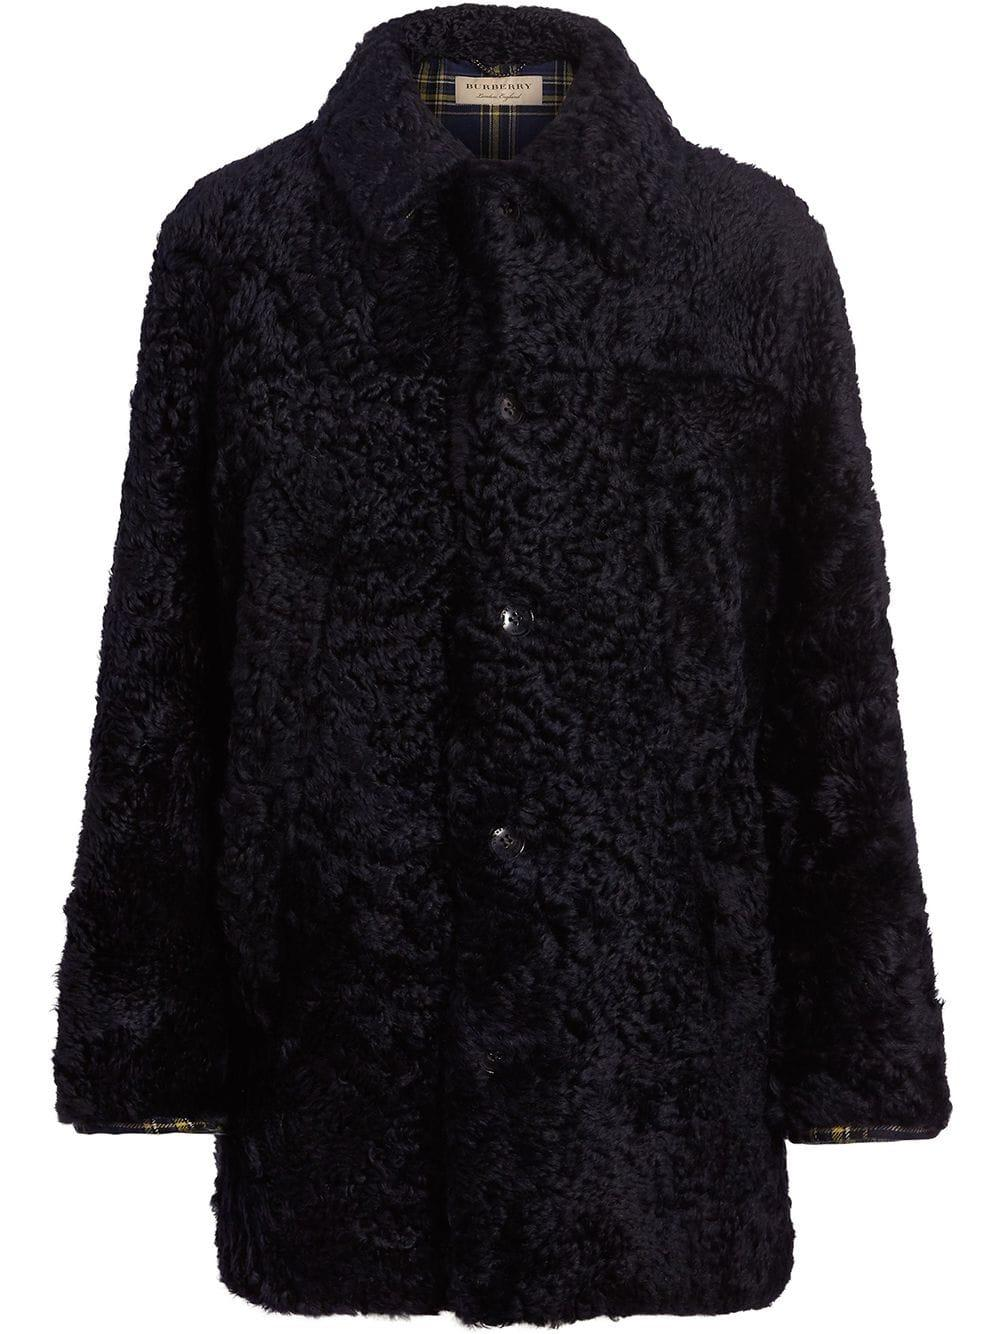 Burberry Curly Shearling Coat - Blue